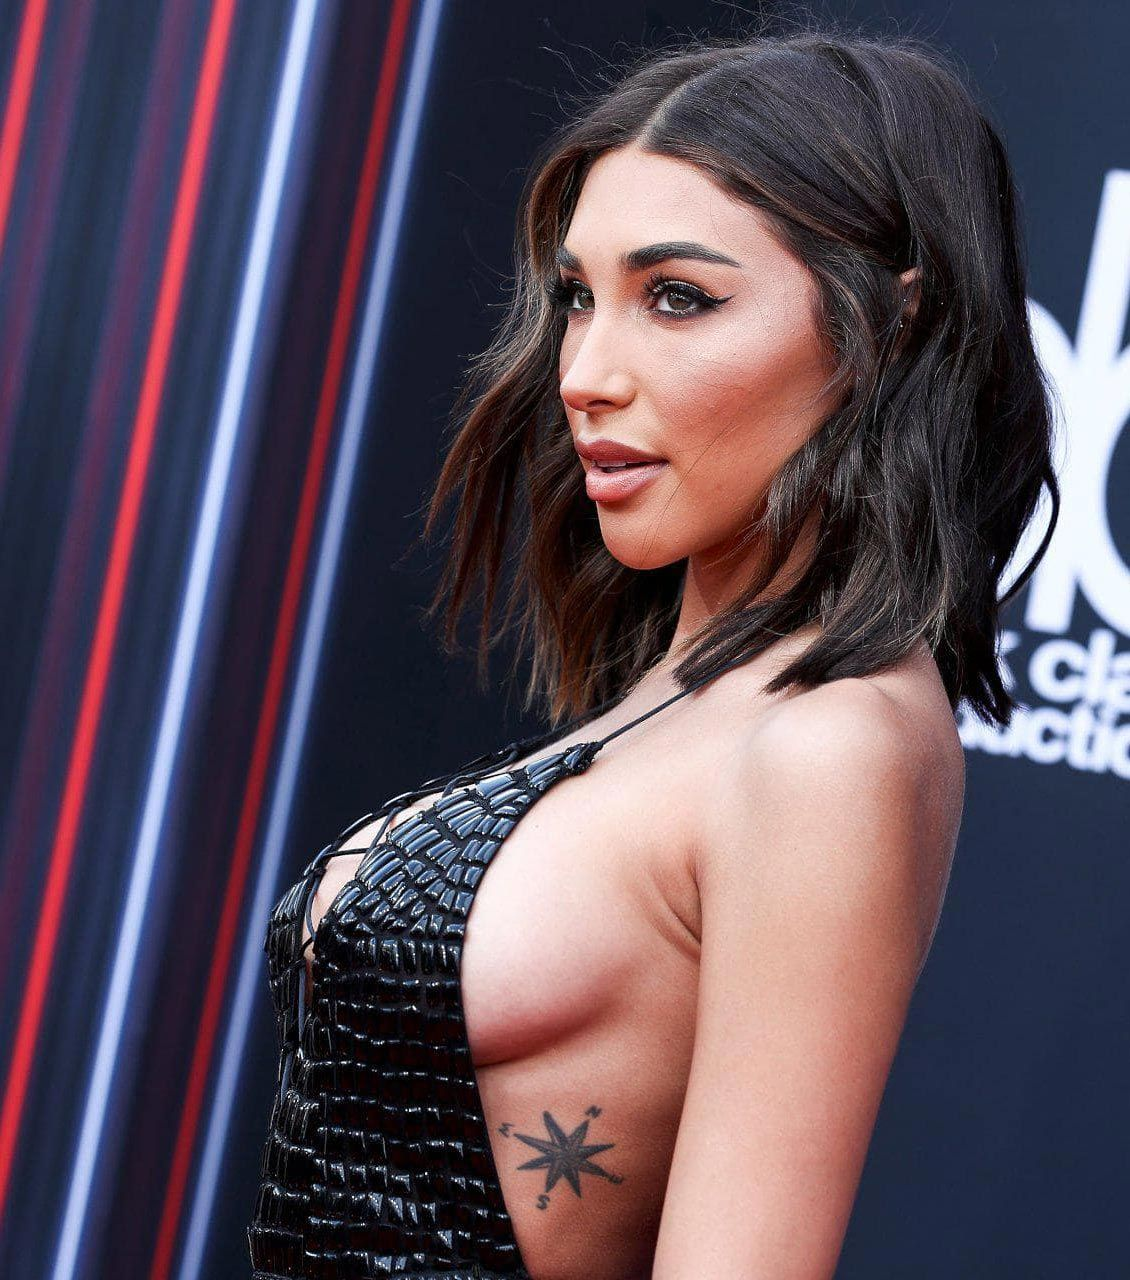 Chantel Jeffries Nude Leaked The Fappening & Sexy 0169